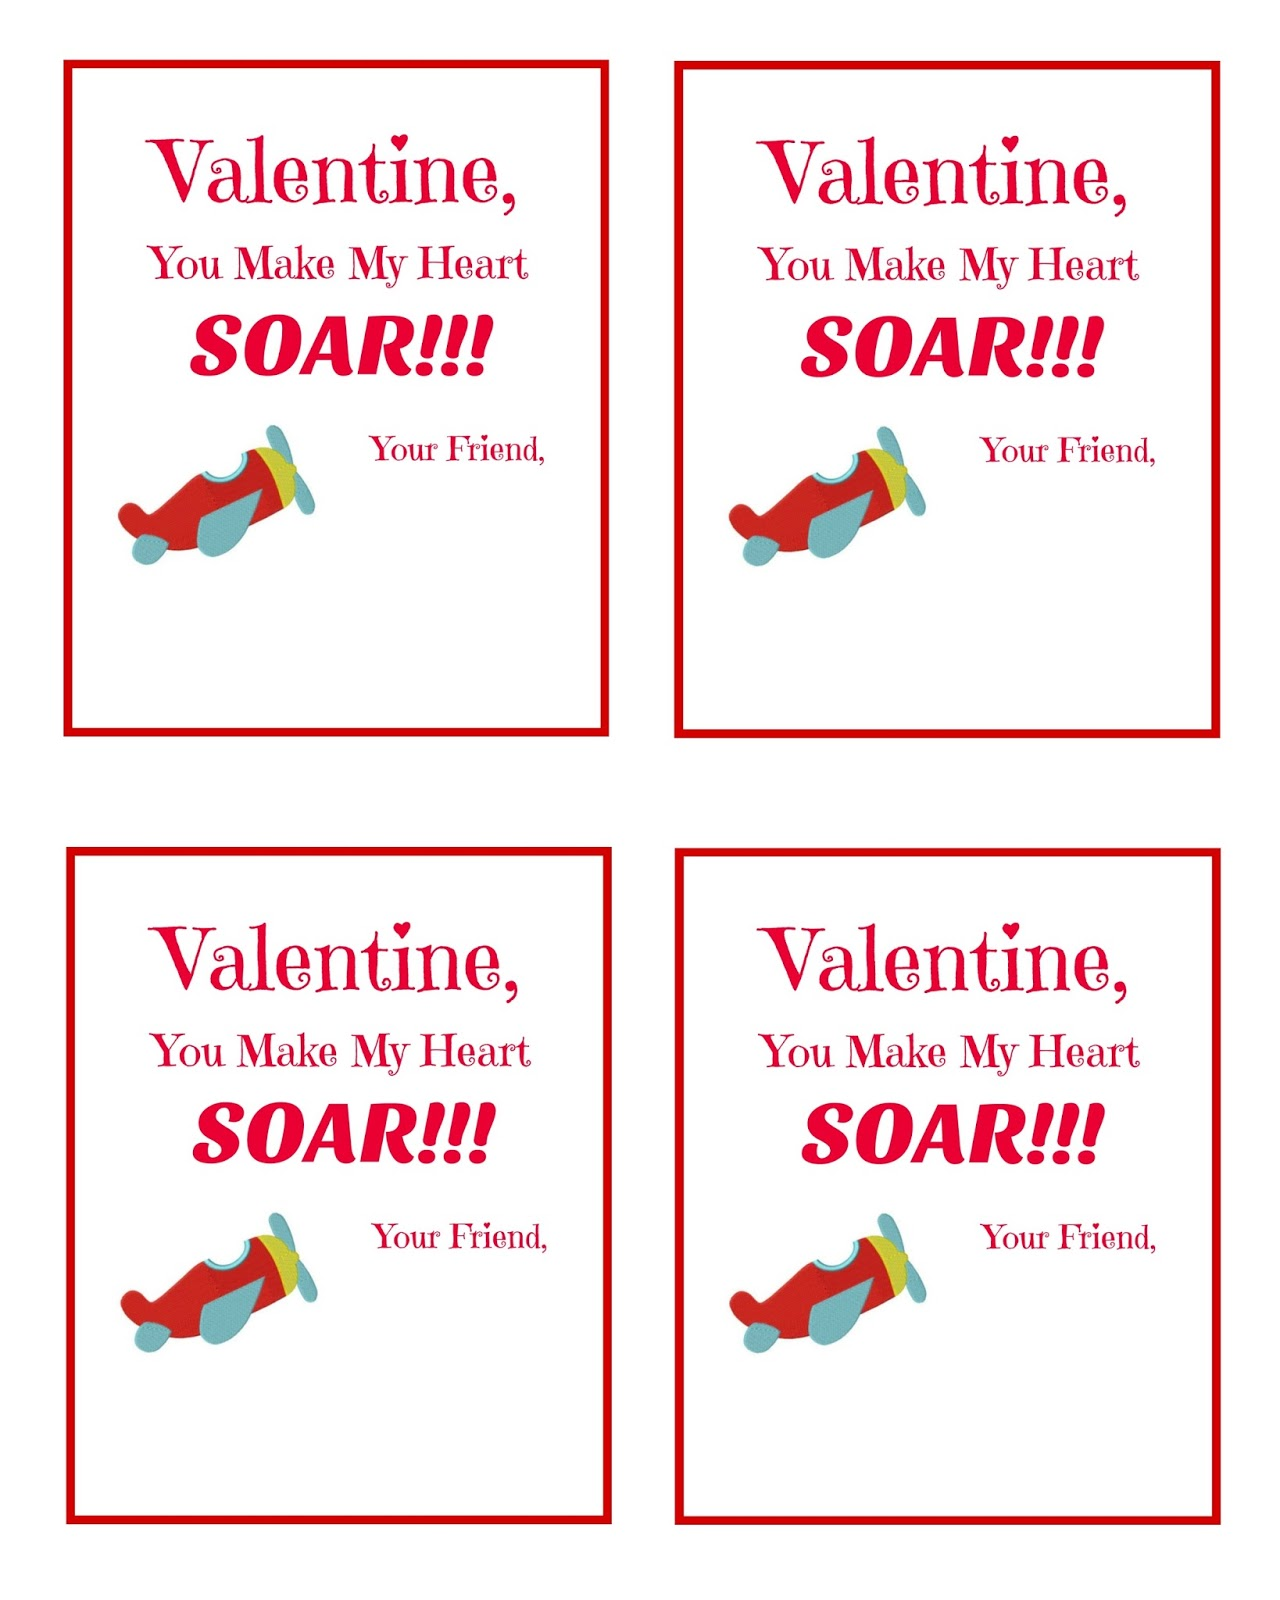 Valentine You Make My Heart SOAR - FREE Printable! - The Momma Diaries